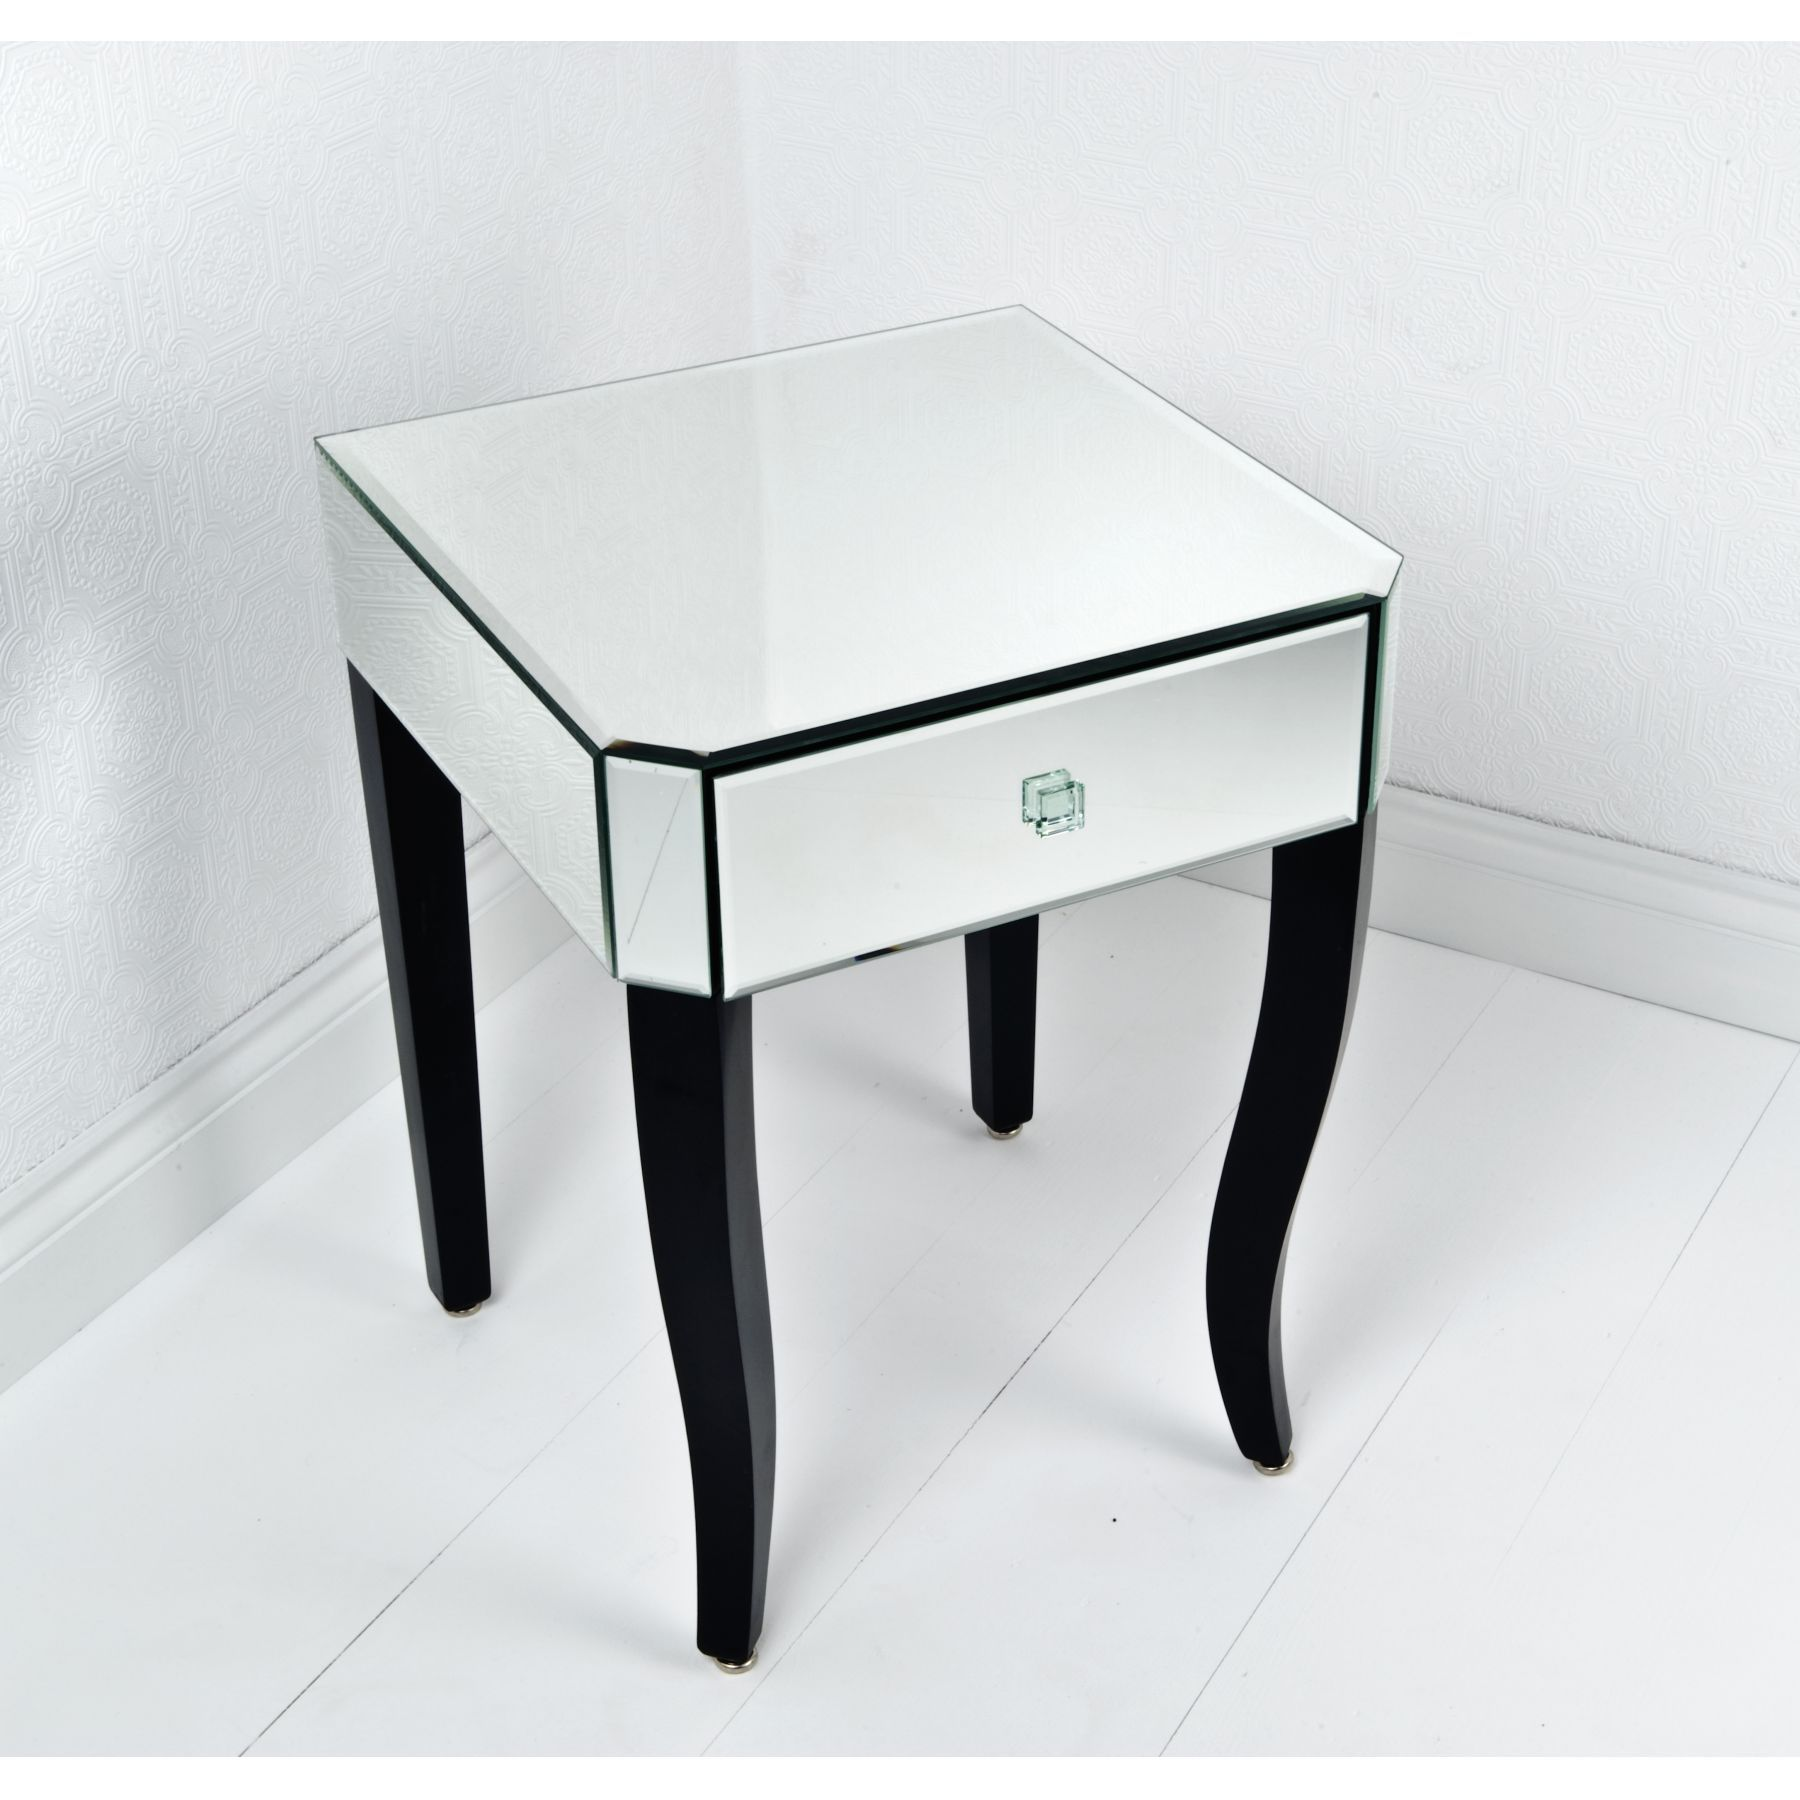 Mirrored side table. | Things I love | Pinterest | Mirrored side ...